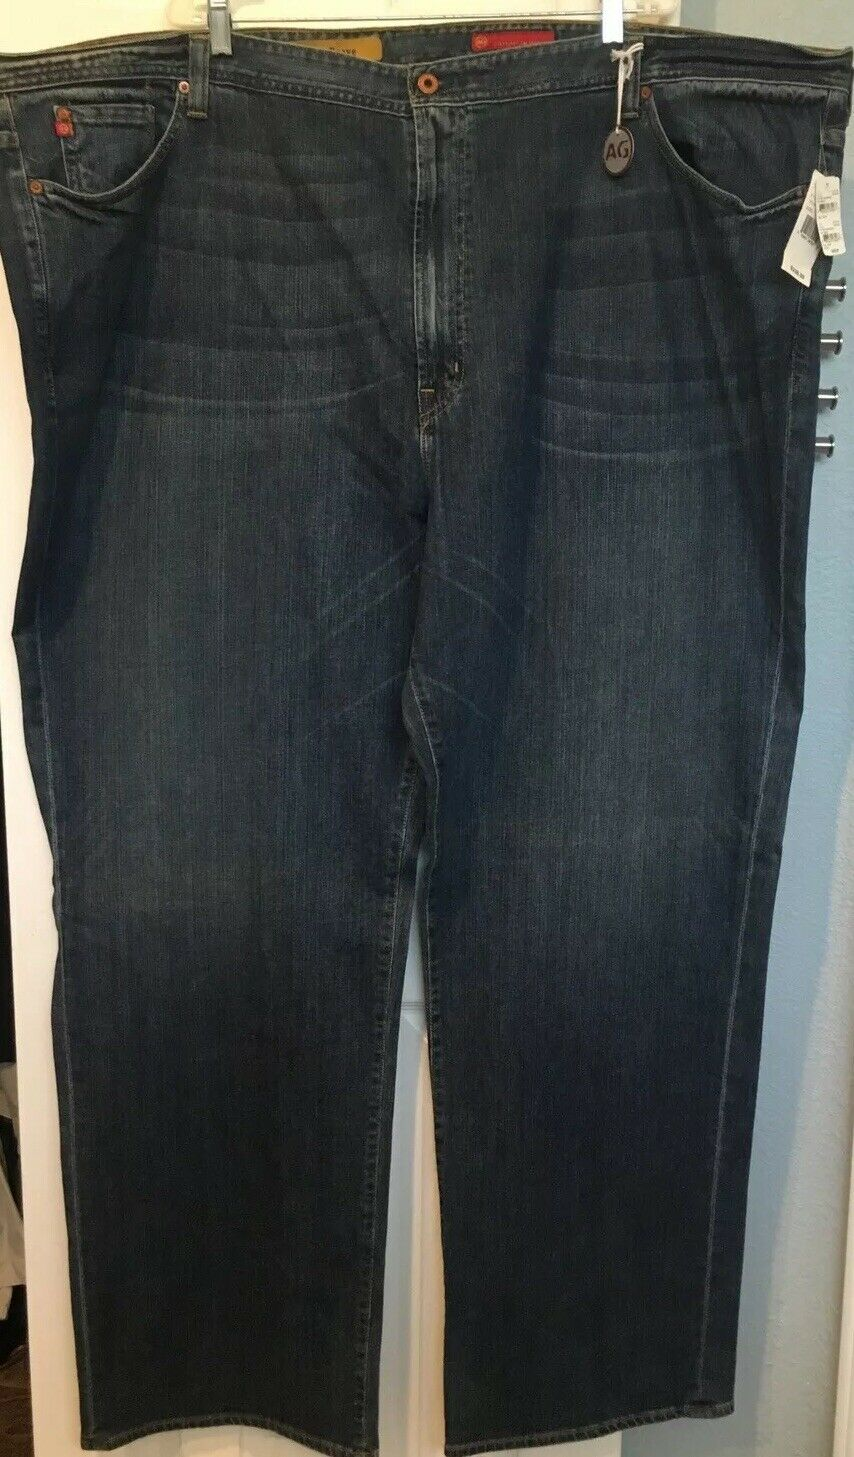 NWT AG Adriano goldshmied bluee Jeans Big Mens 58 X 36 The Brave MSRP